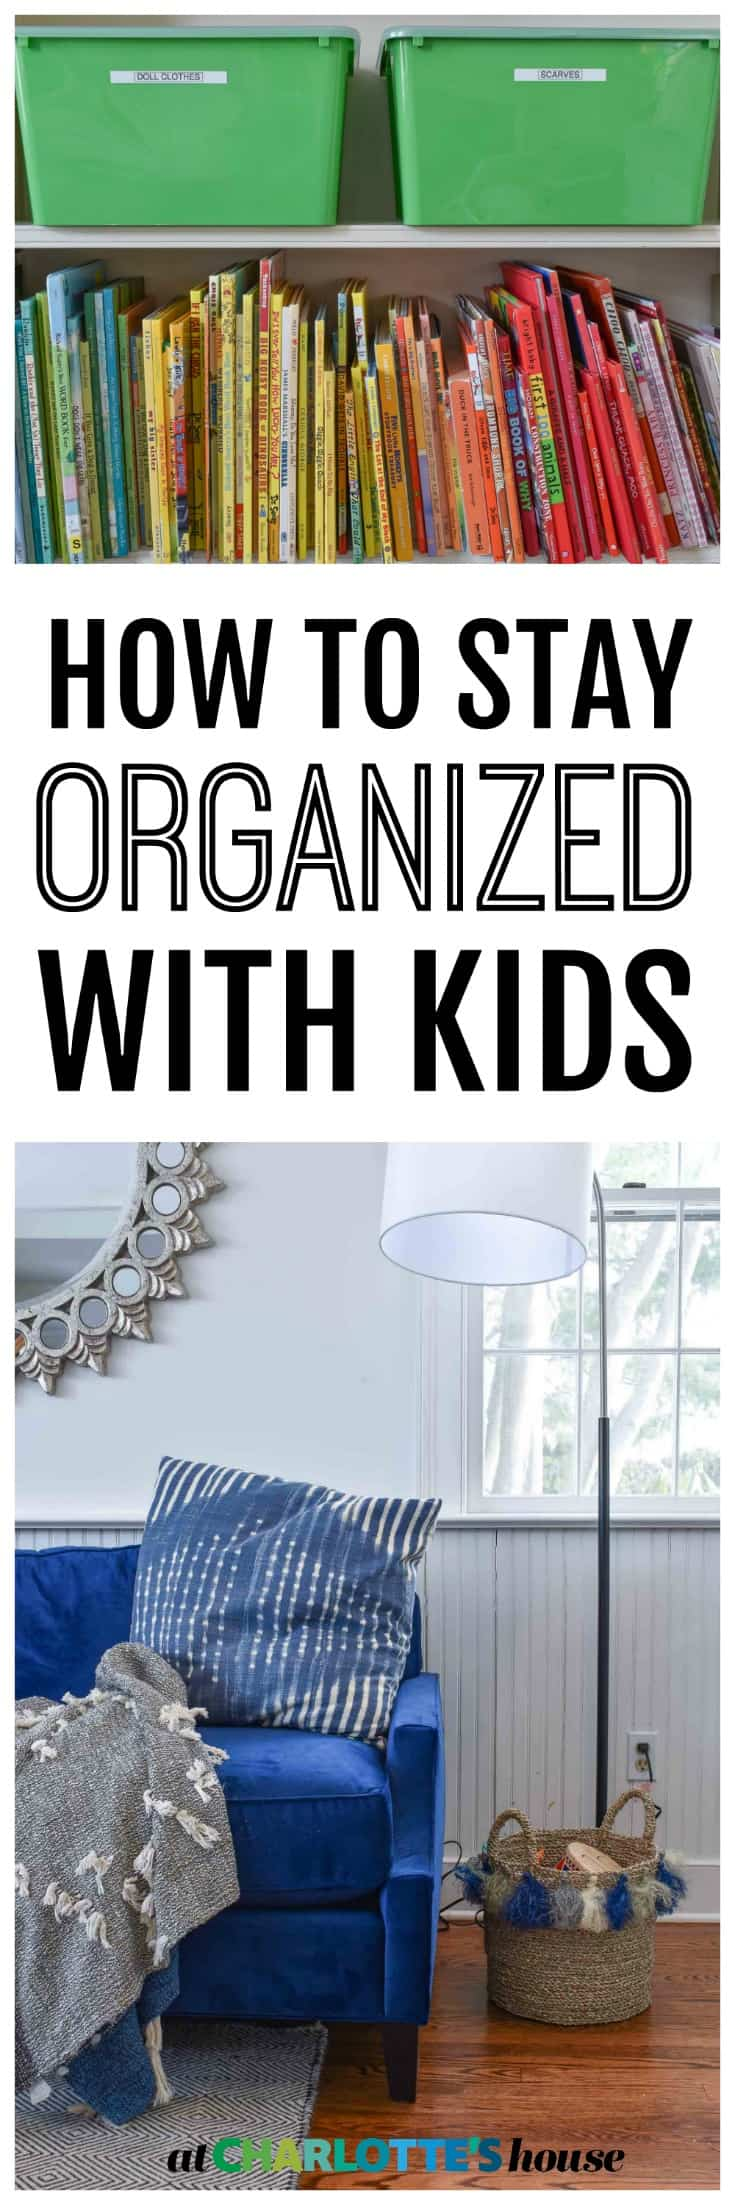 how-to-stay-organized-with-kids